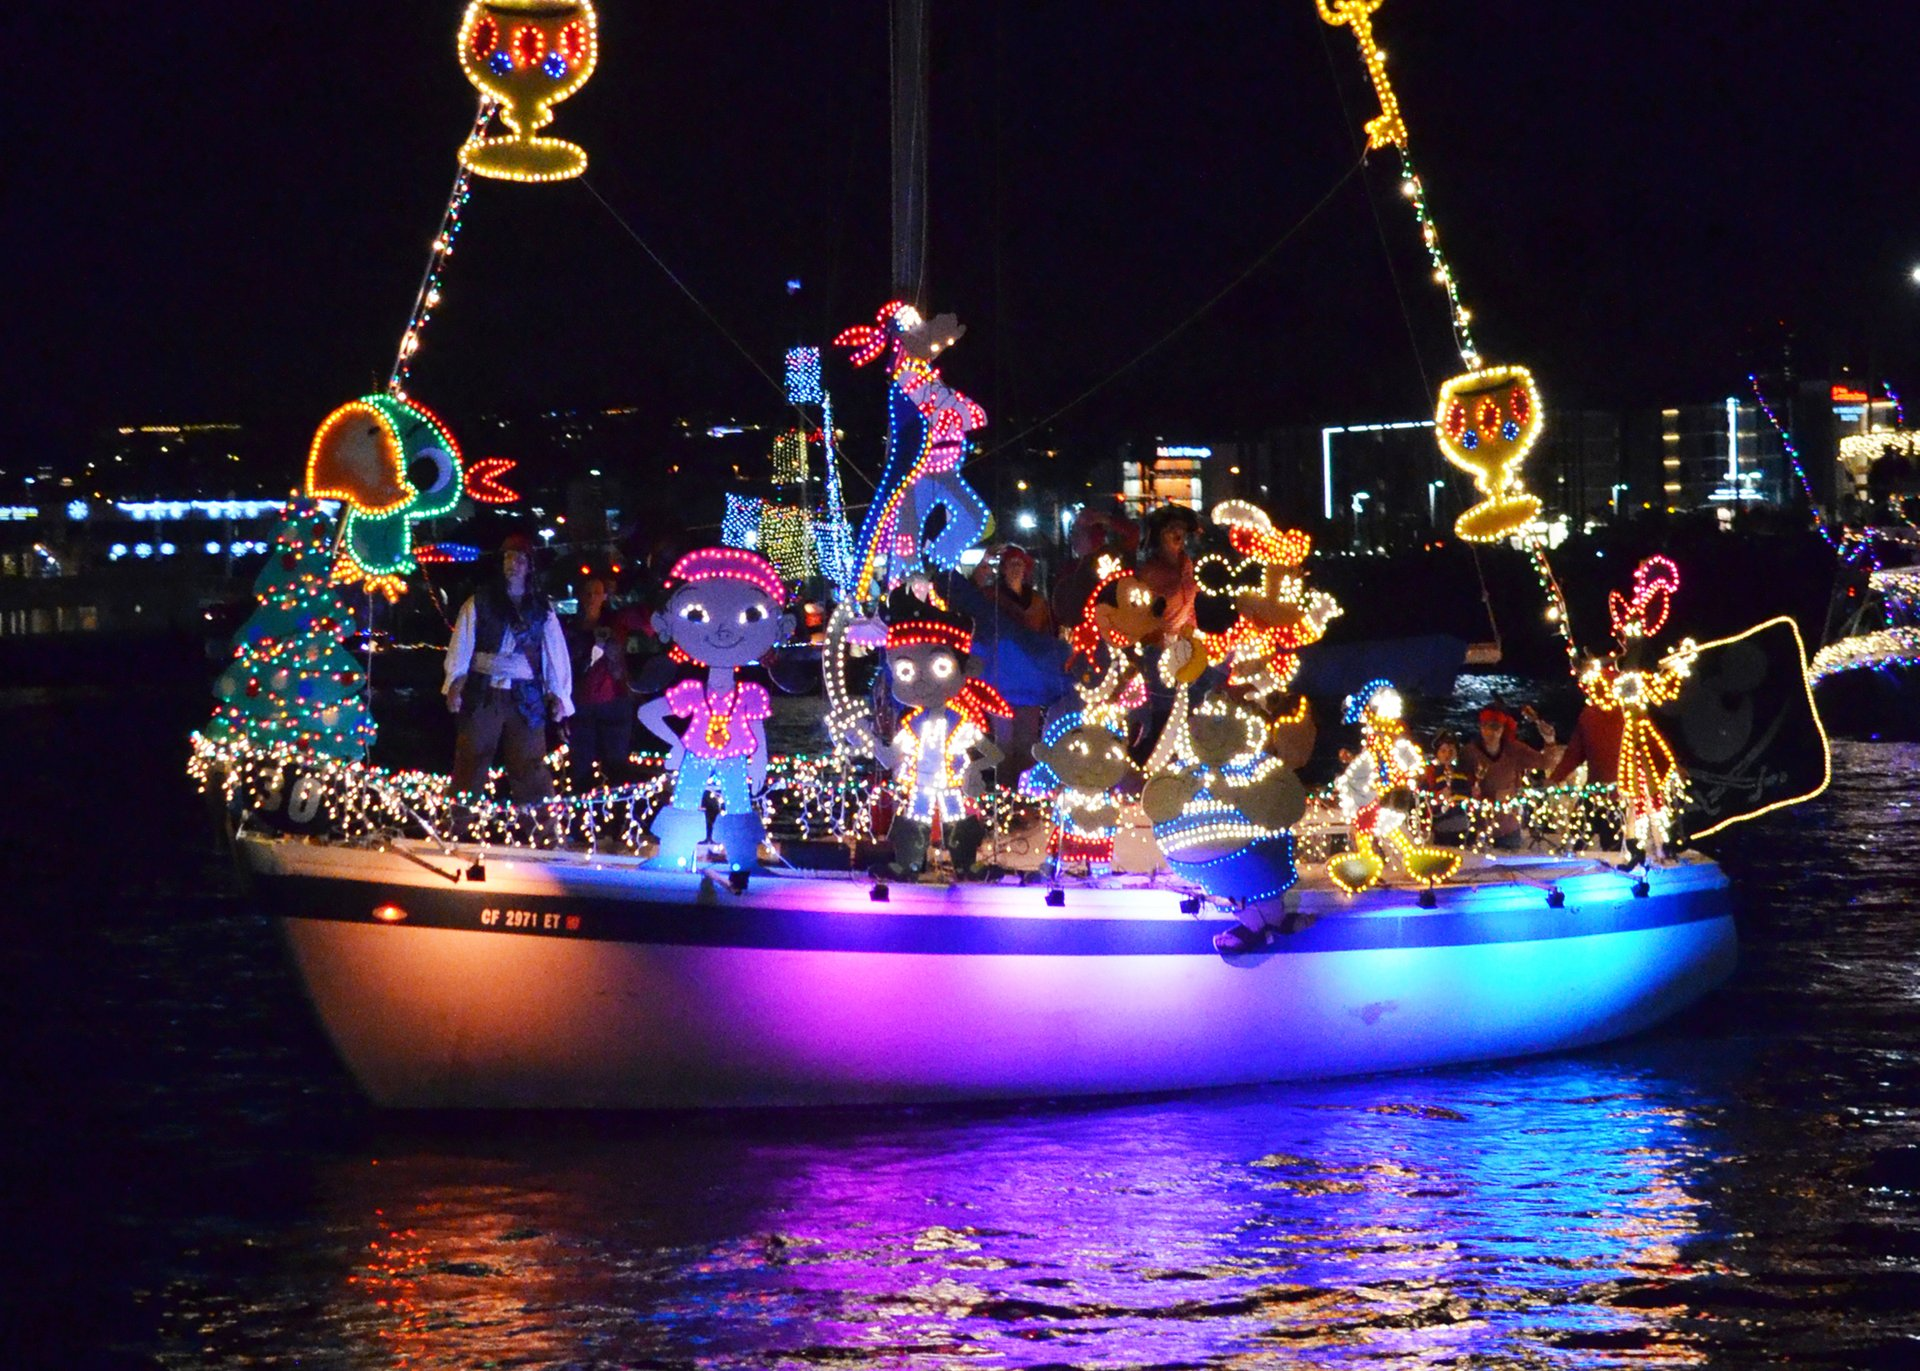 San Diego Bay Parade of Lights & Other Holiday Lights in San Diego 2019 - Best Time